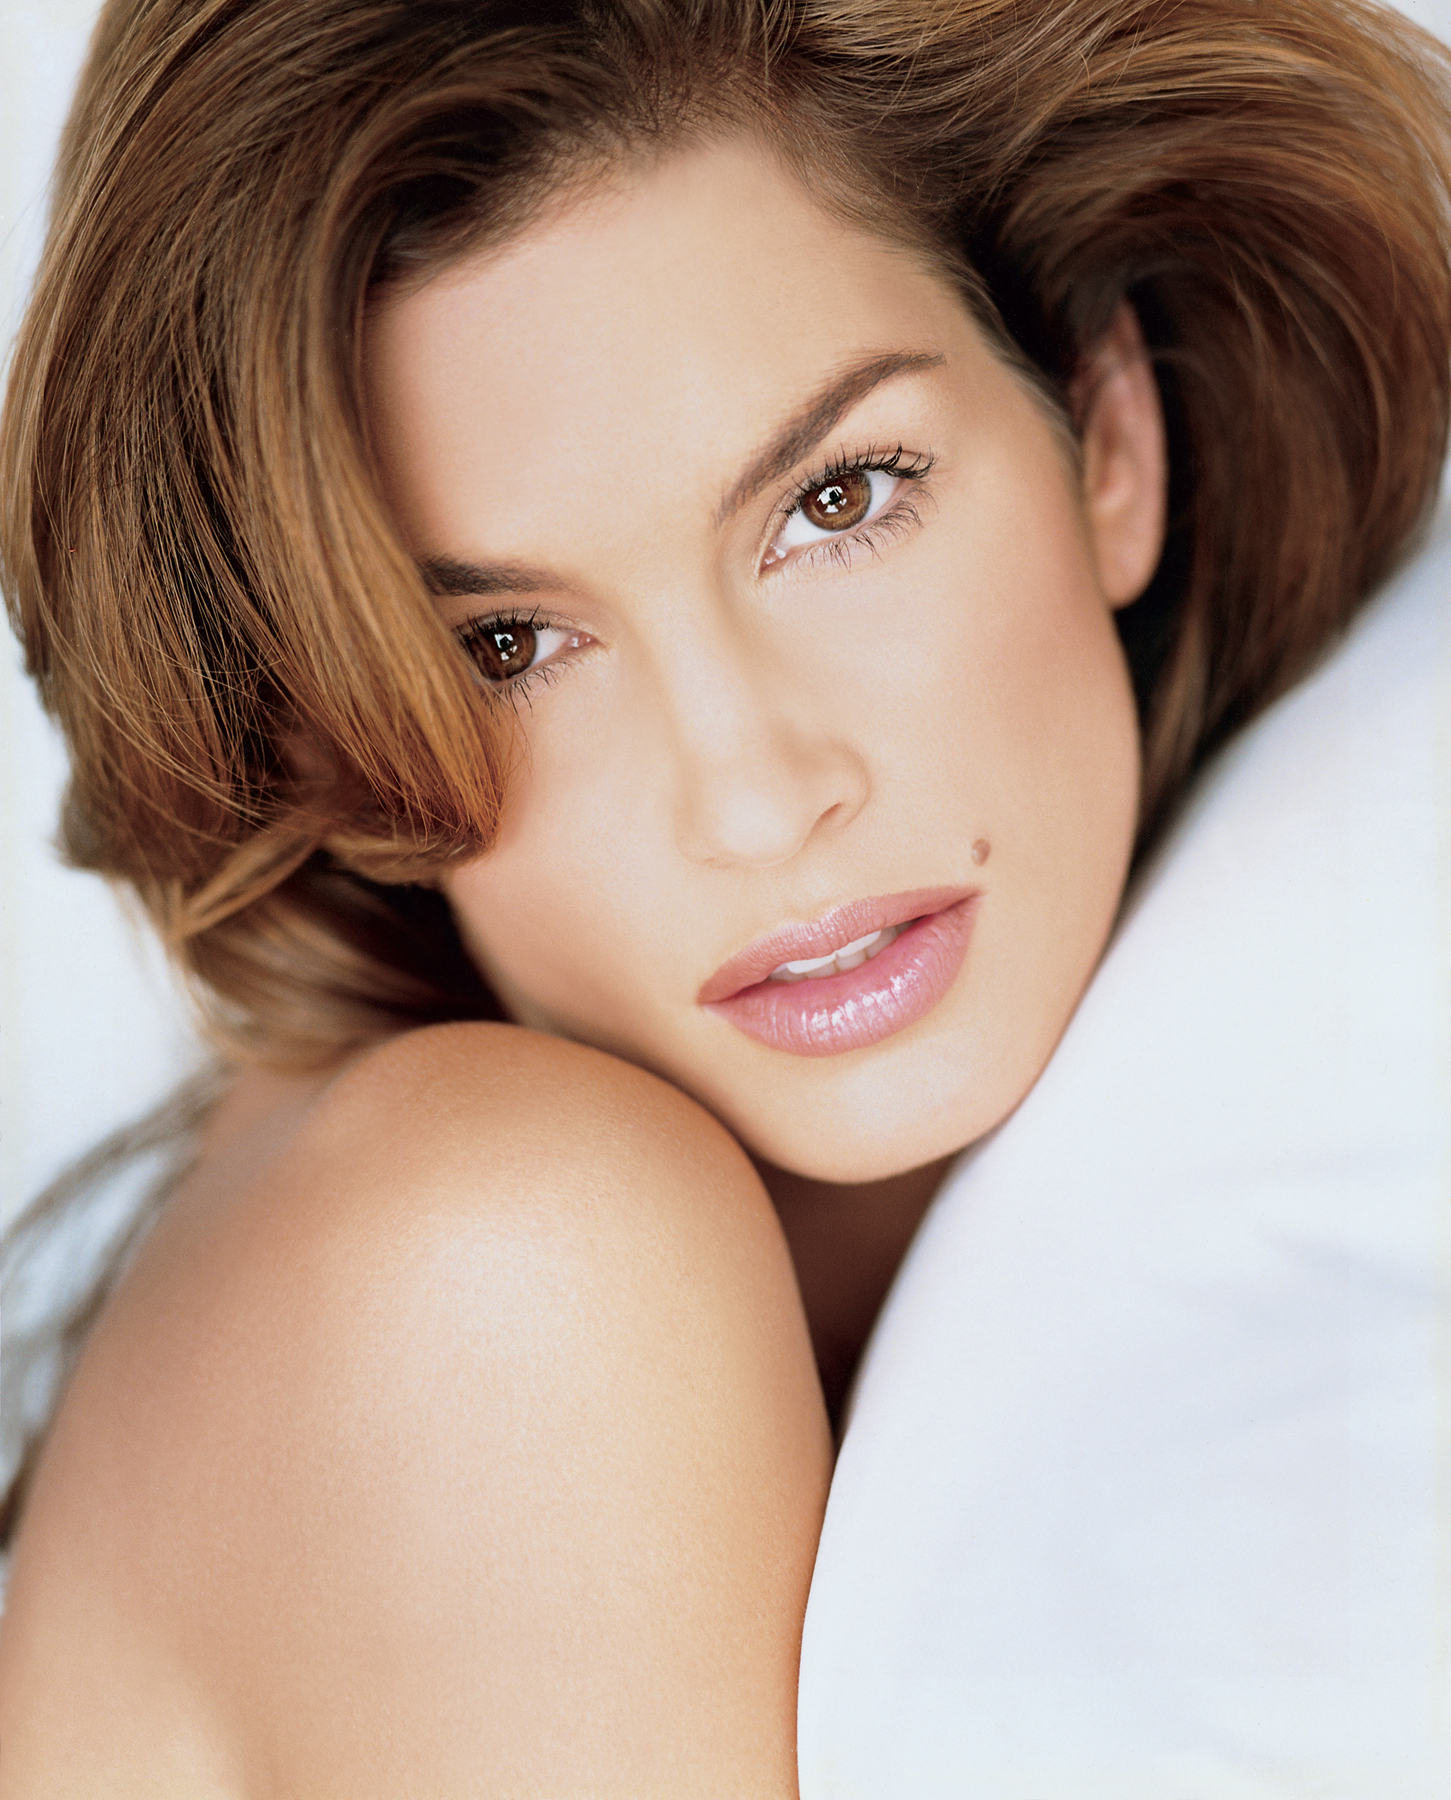 CINDY CRAWFORD by Fabian Morassut